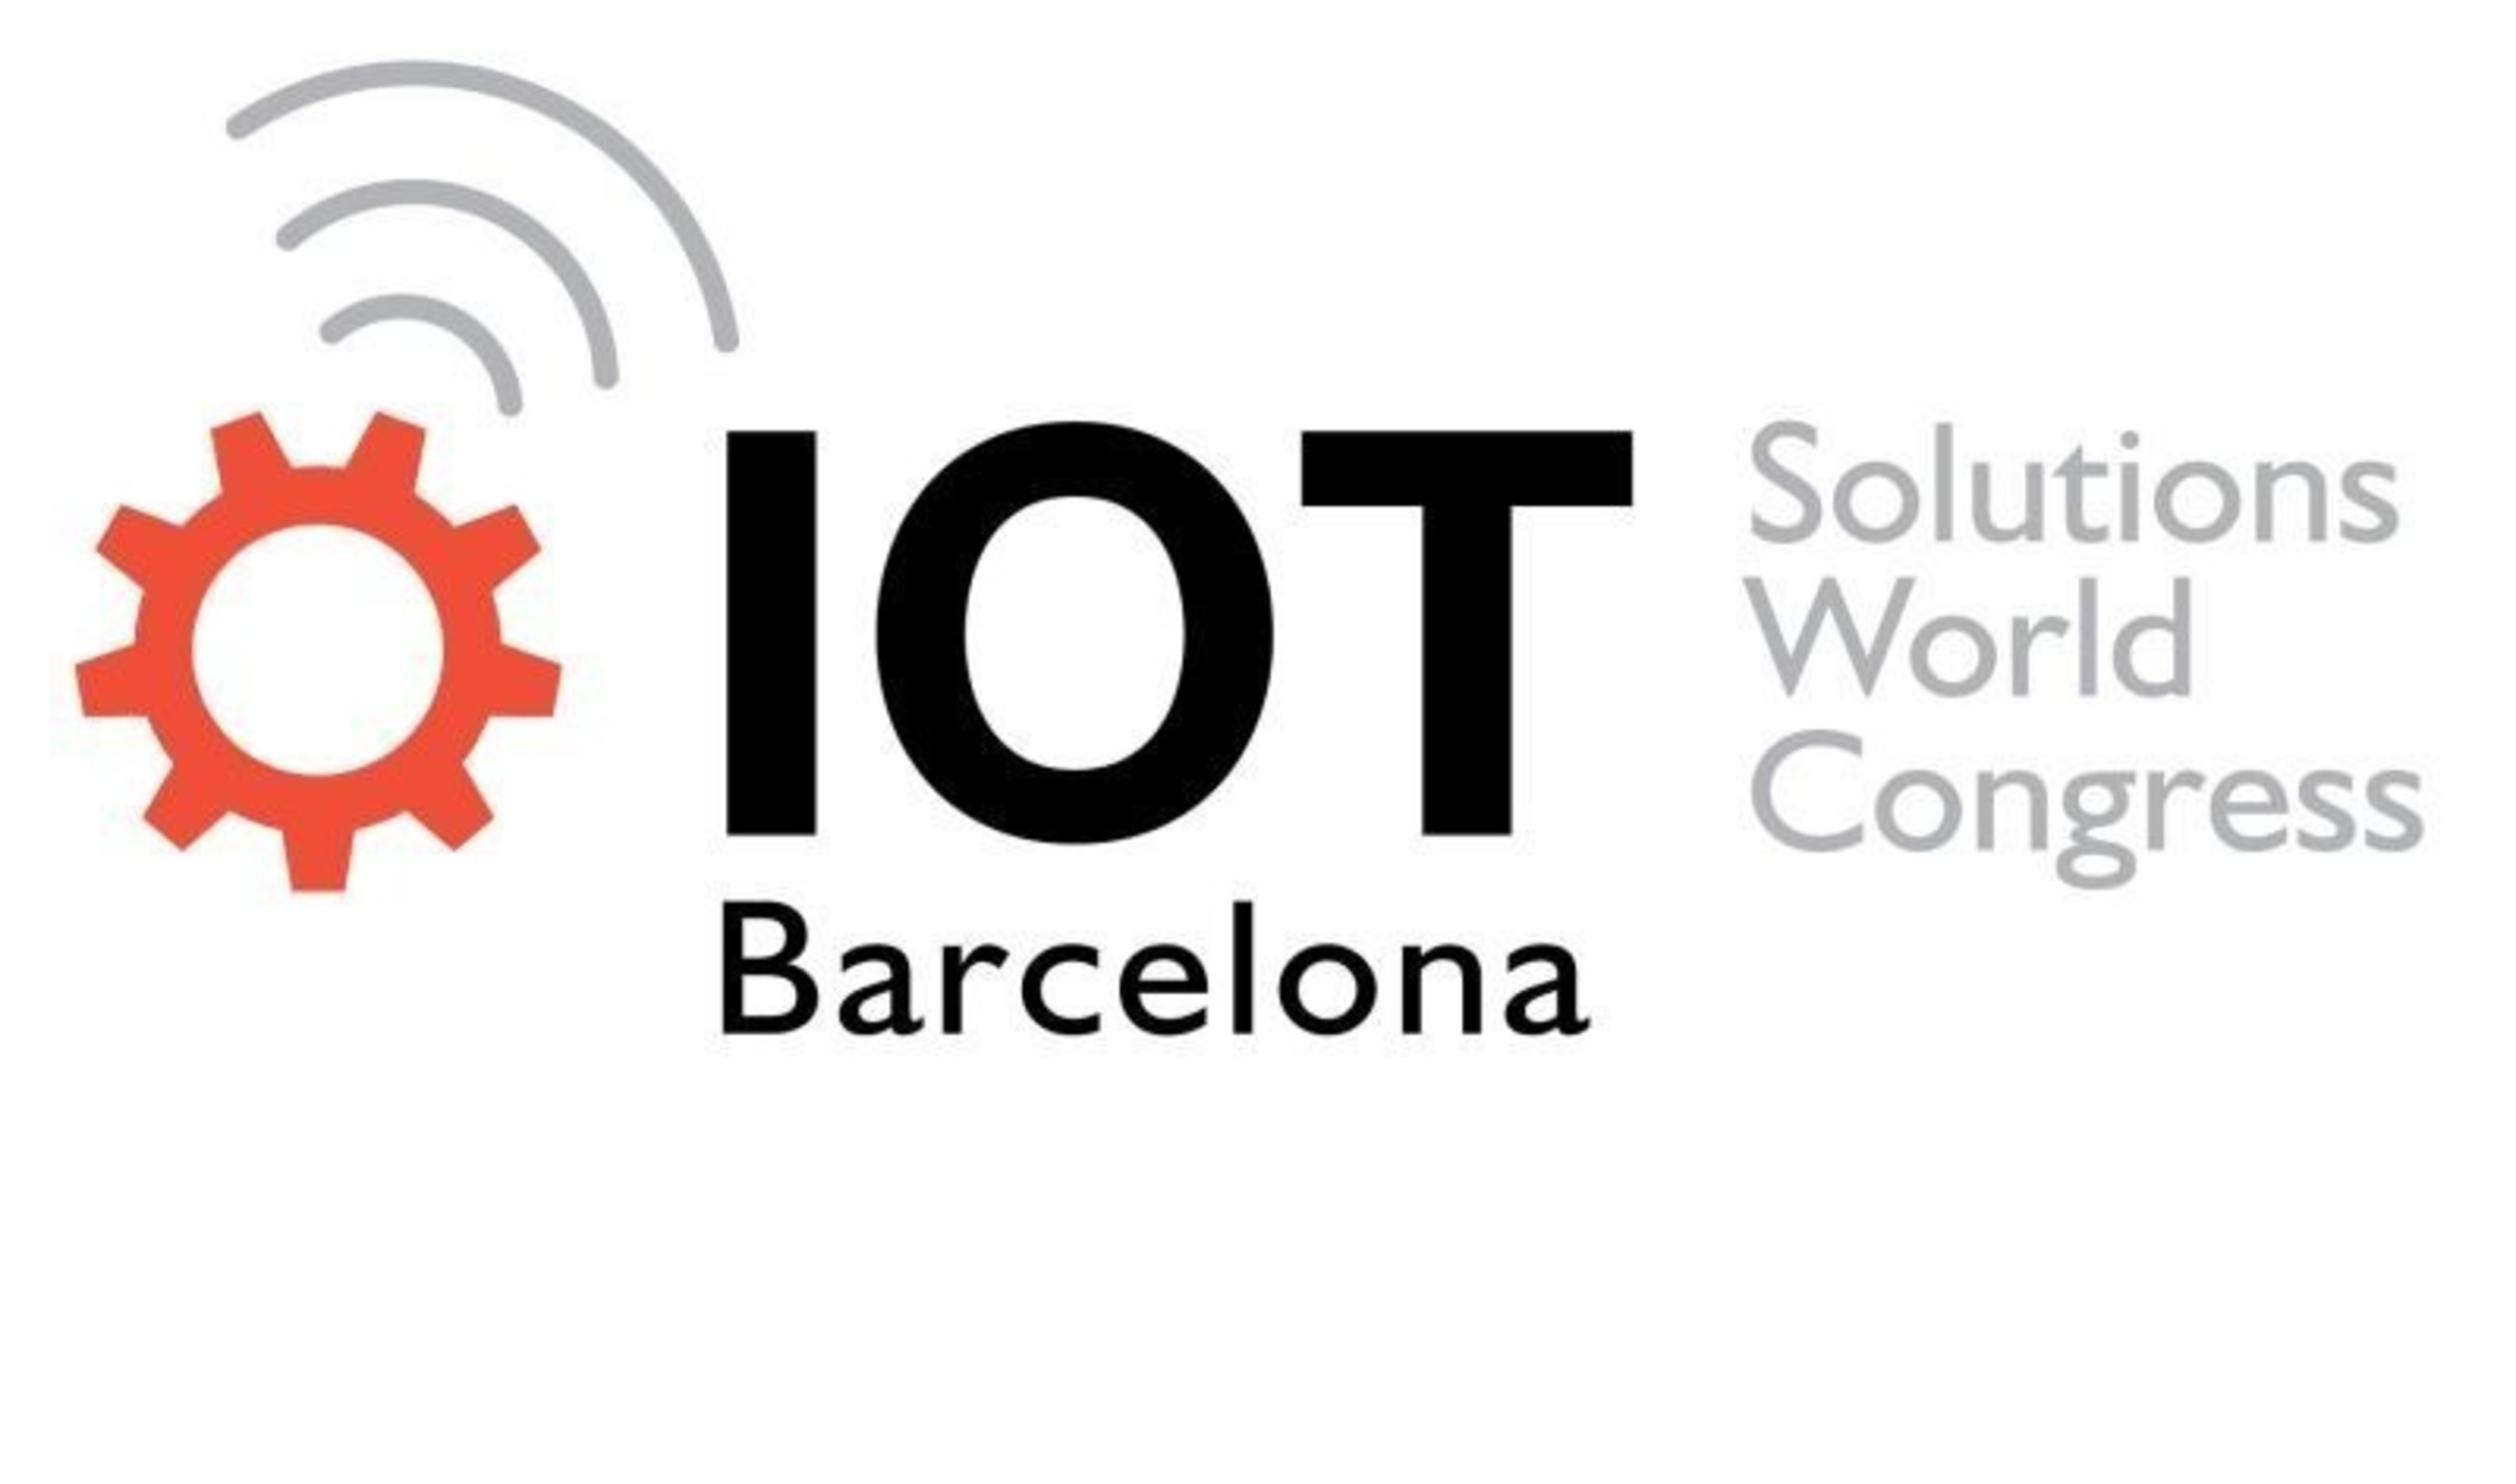 Amazon, CERN, GE, Intel and IBM to Keynote at the Internet of Things Solutions World Congress